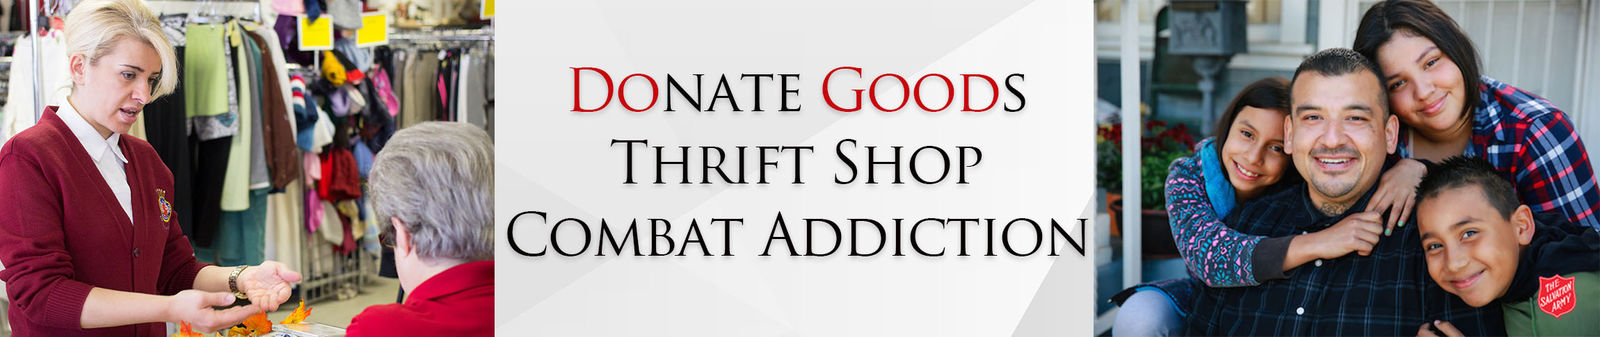 ShopTheSalvationArmy.com